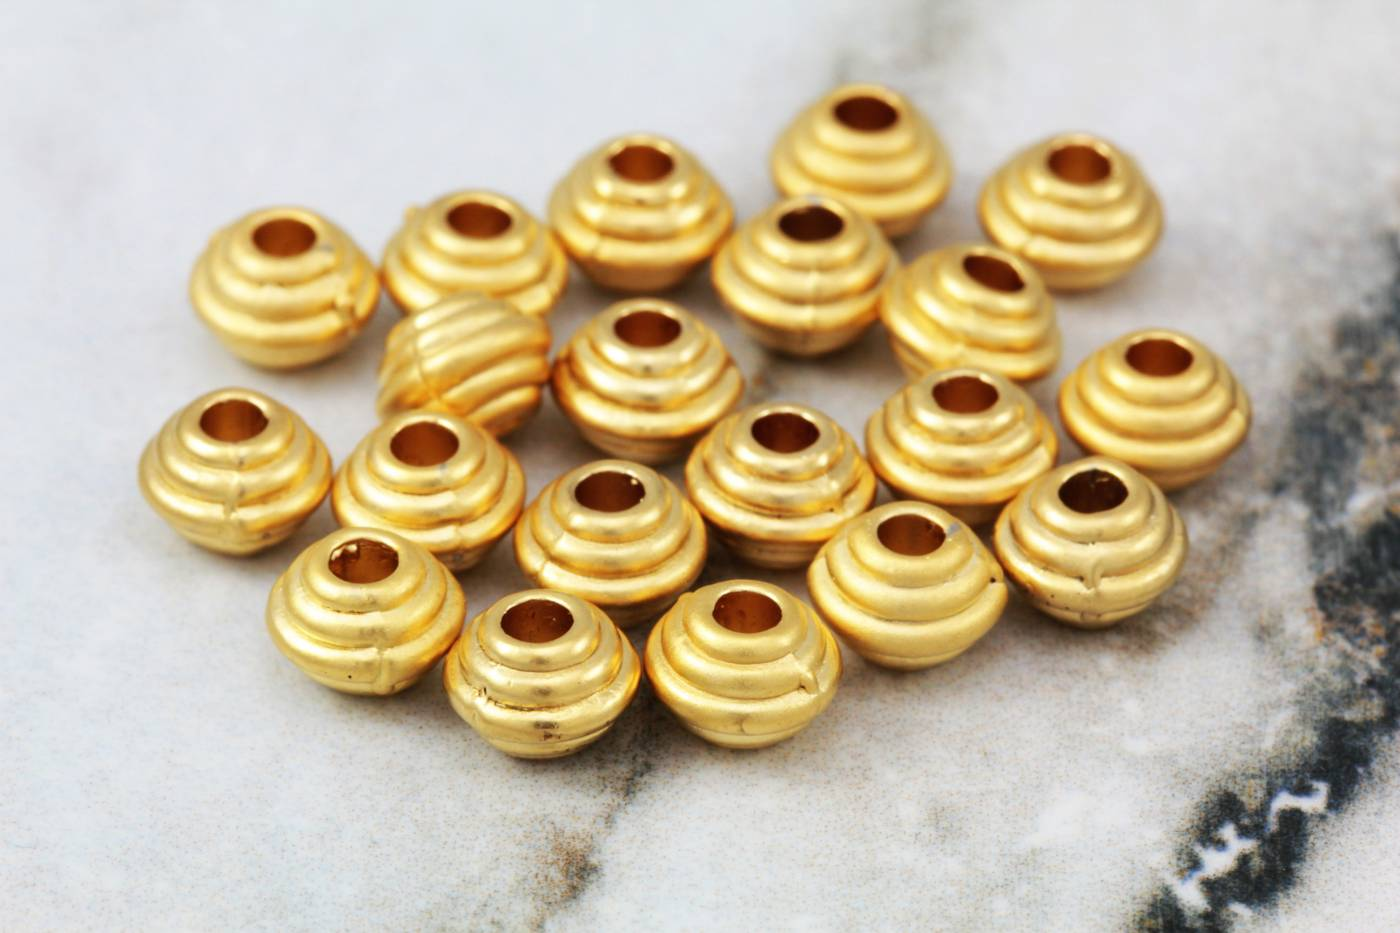 gold-mini-saucer-shape-spacer-beads.jpg